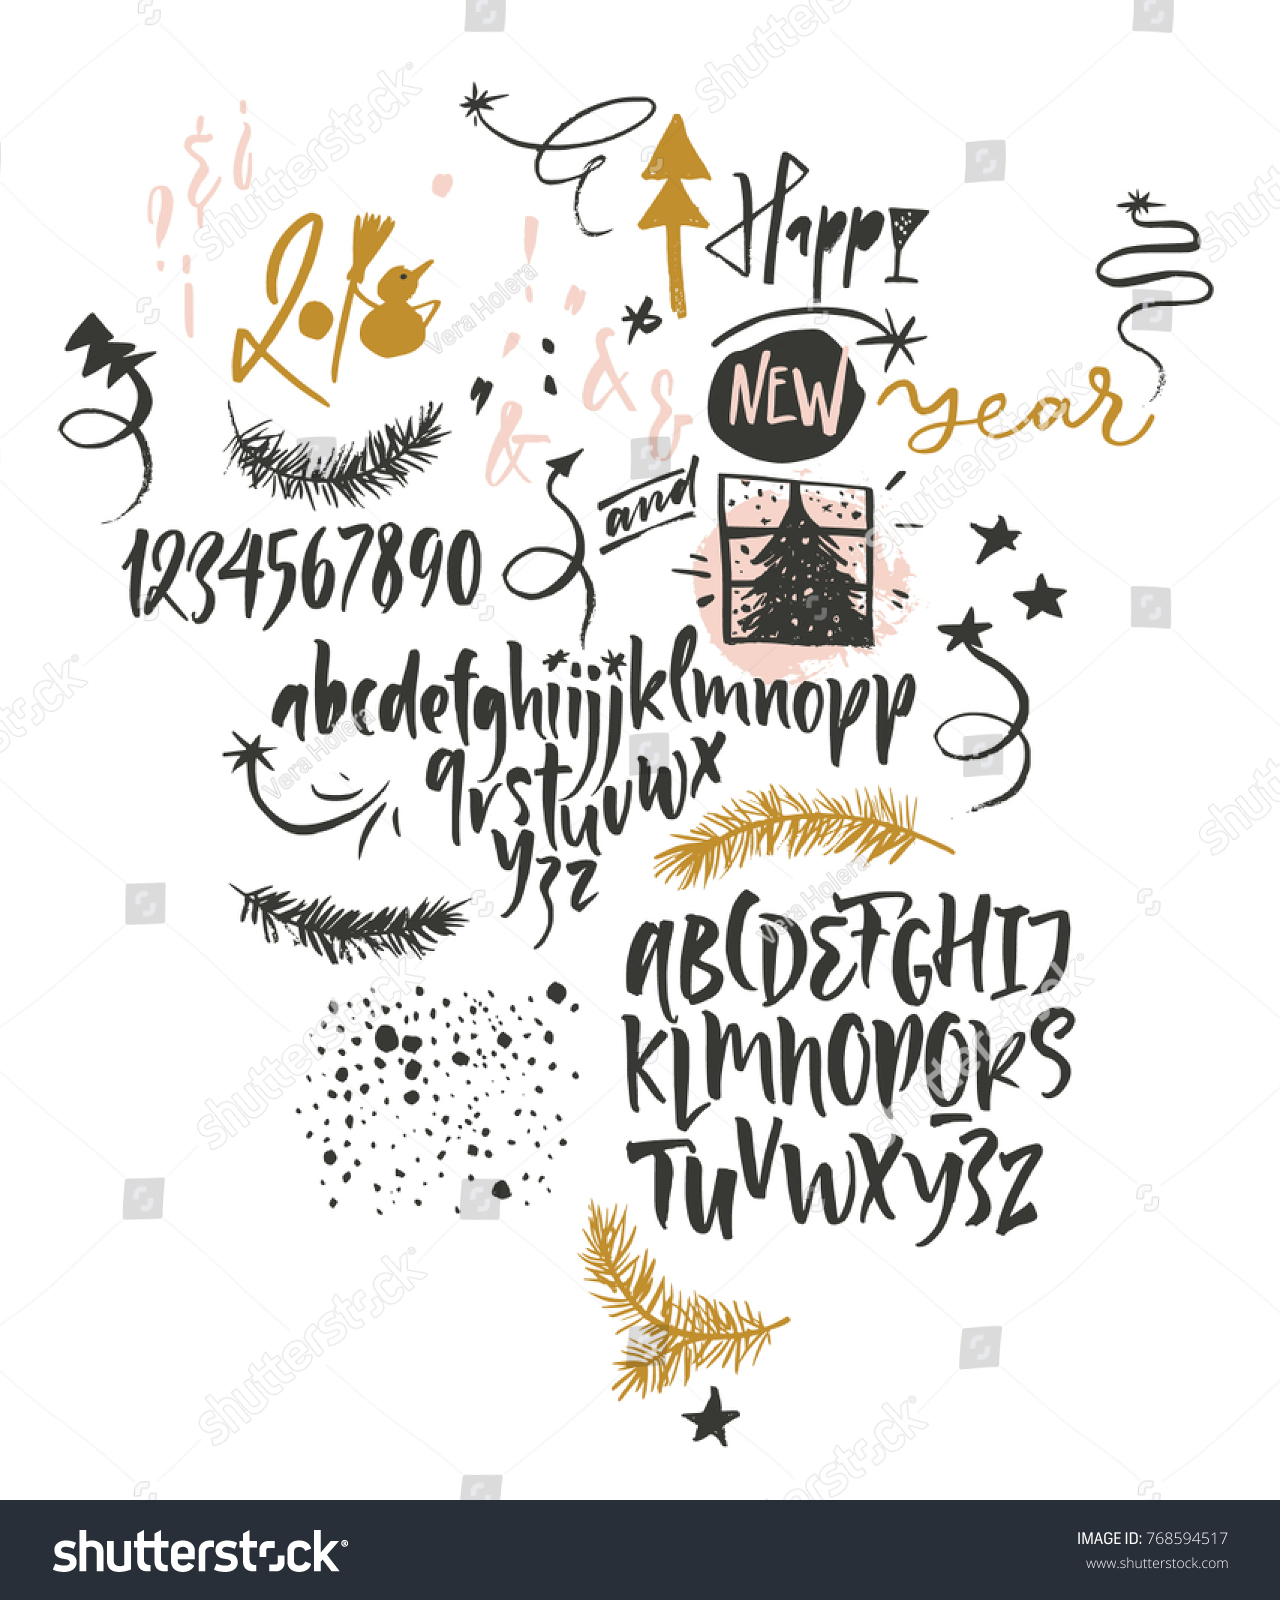 Happy New Year Funny Font Graphic Stock Vector (Royalty Free ...